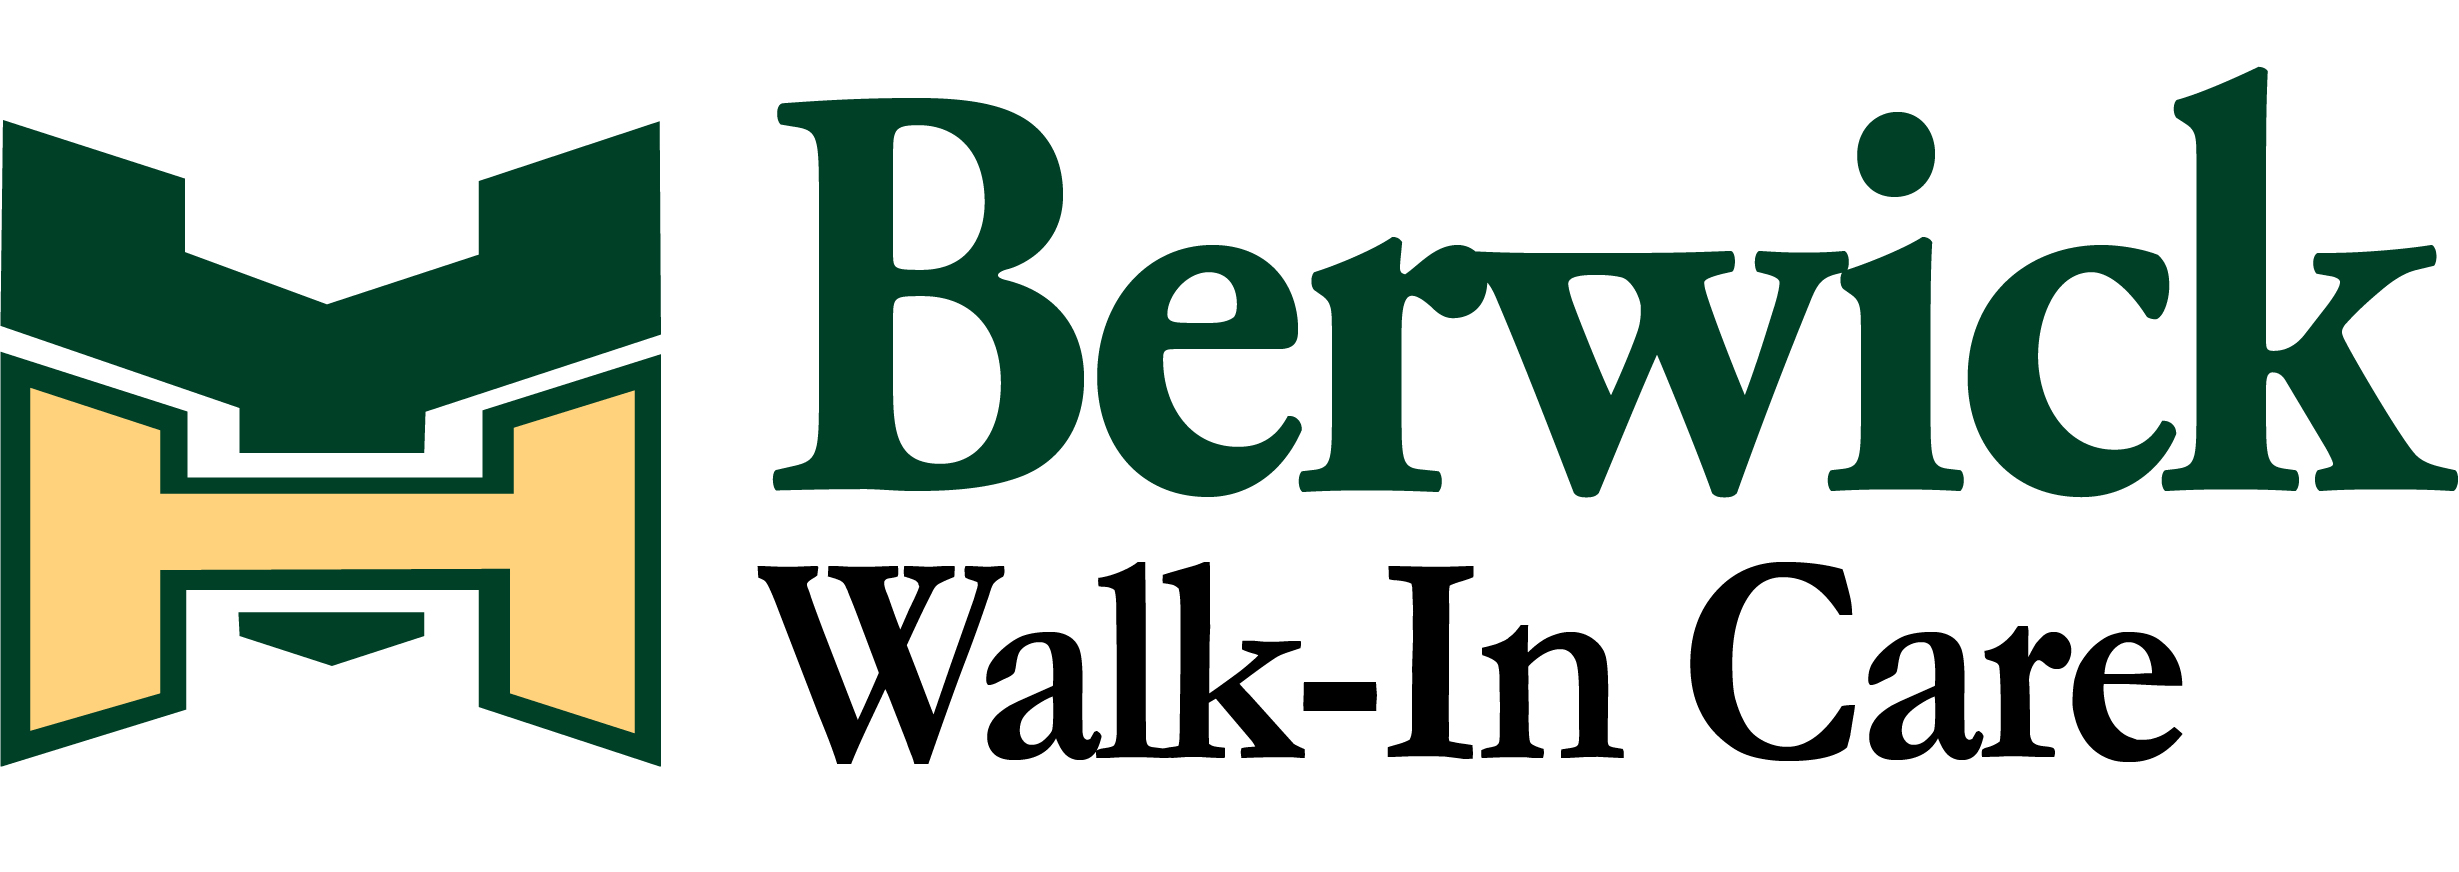 Walk in care berwick